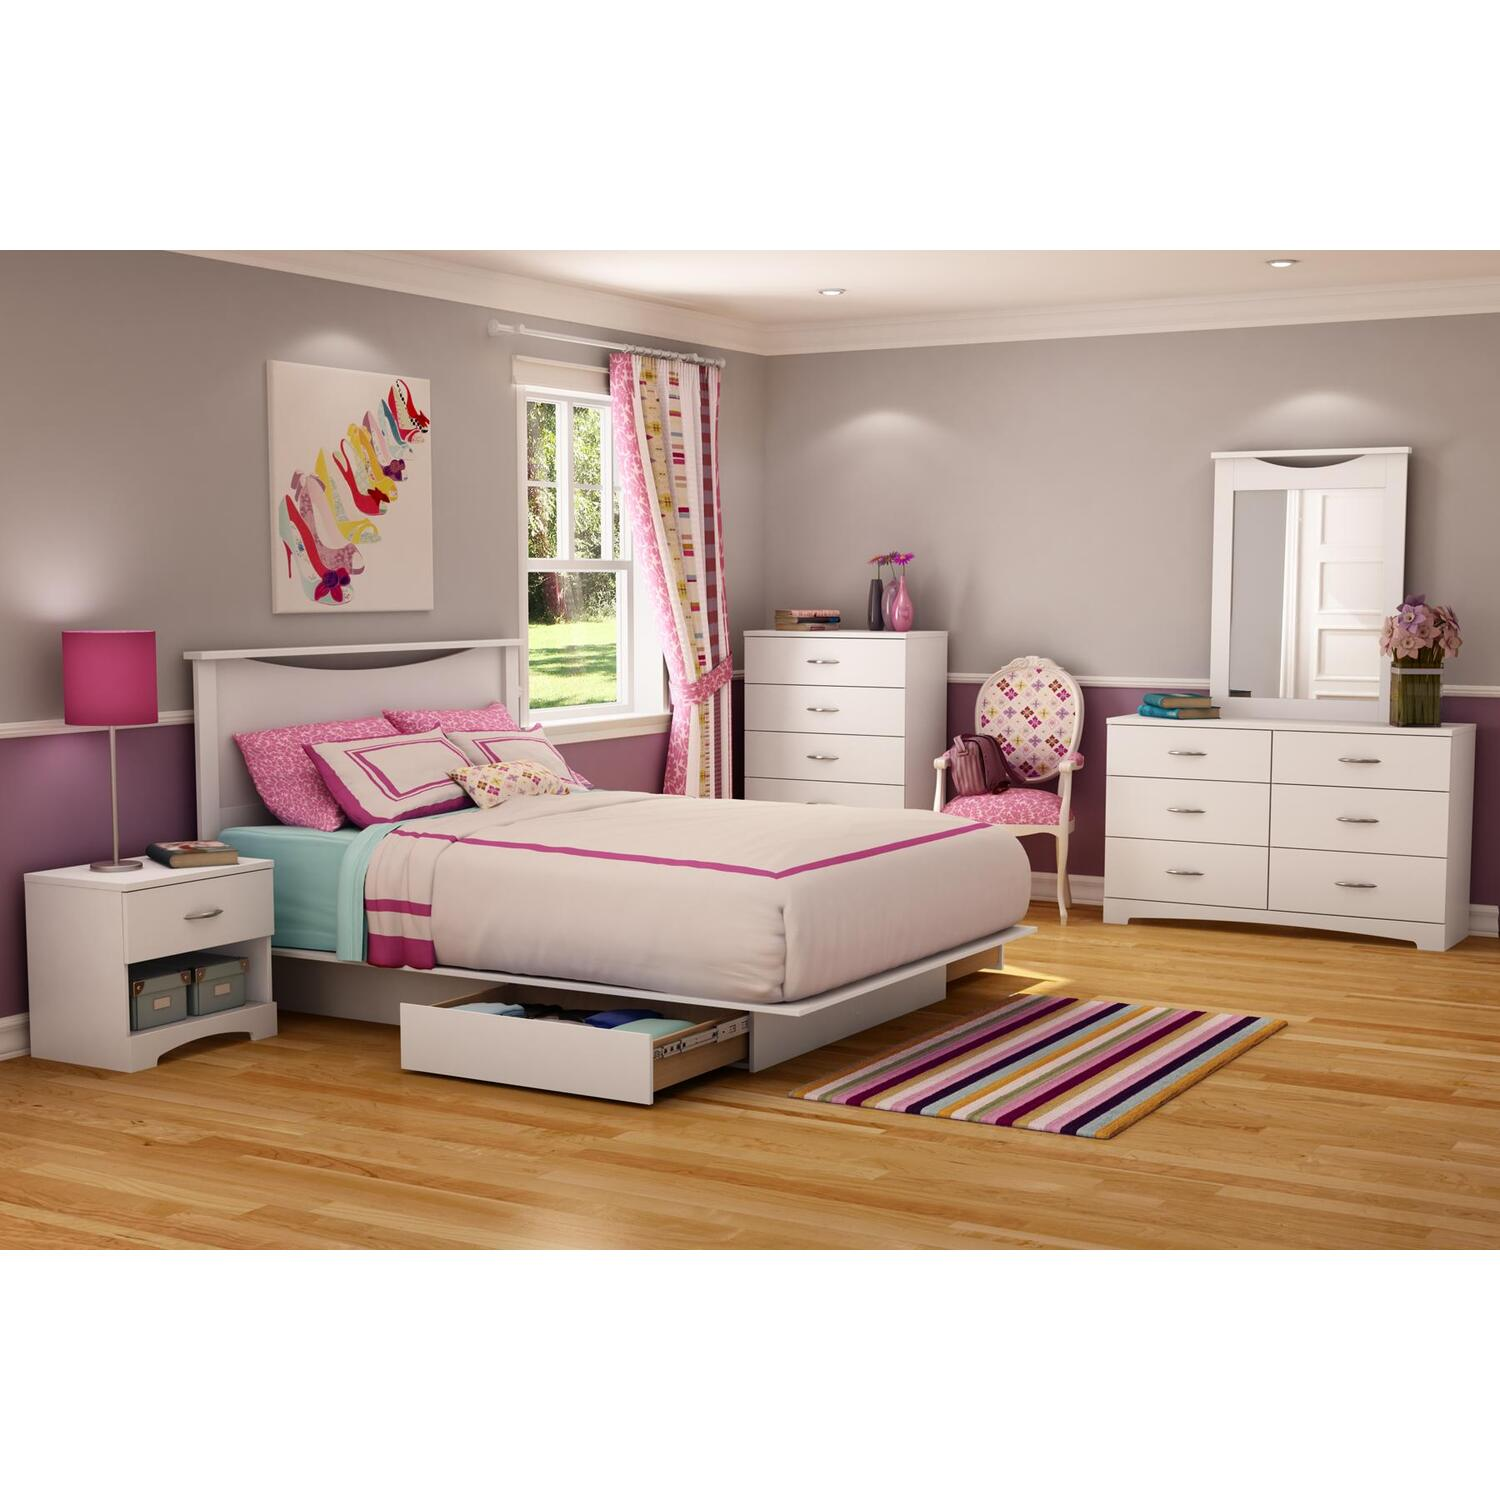 shore 3160fq6pc step one full queen 6 piece bedroom set in pure white